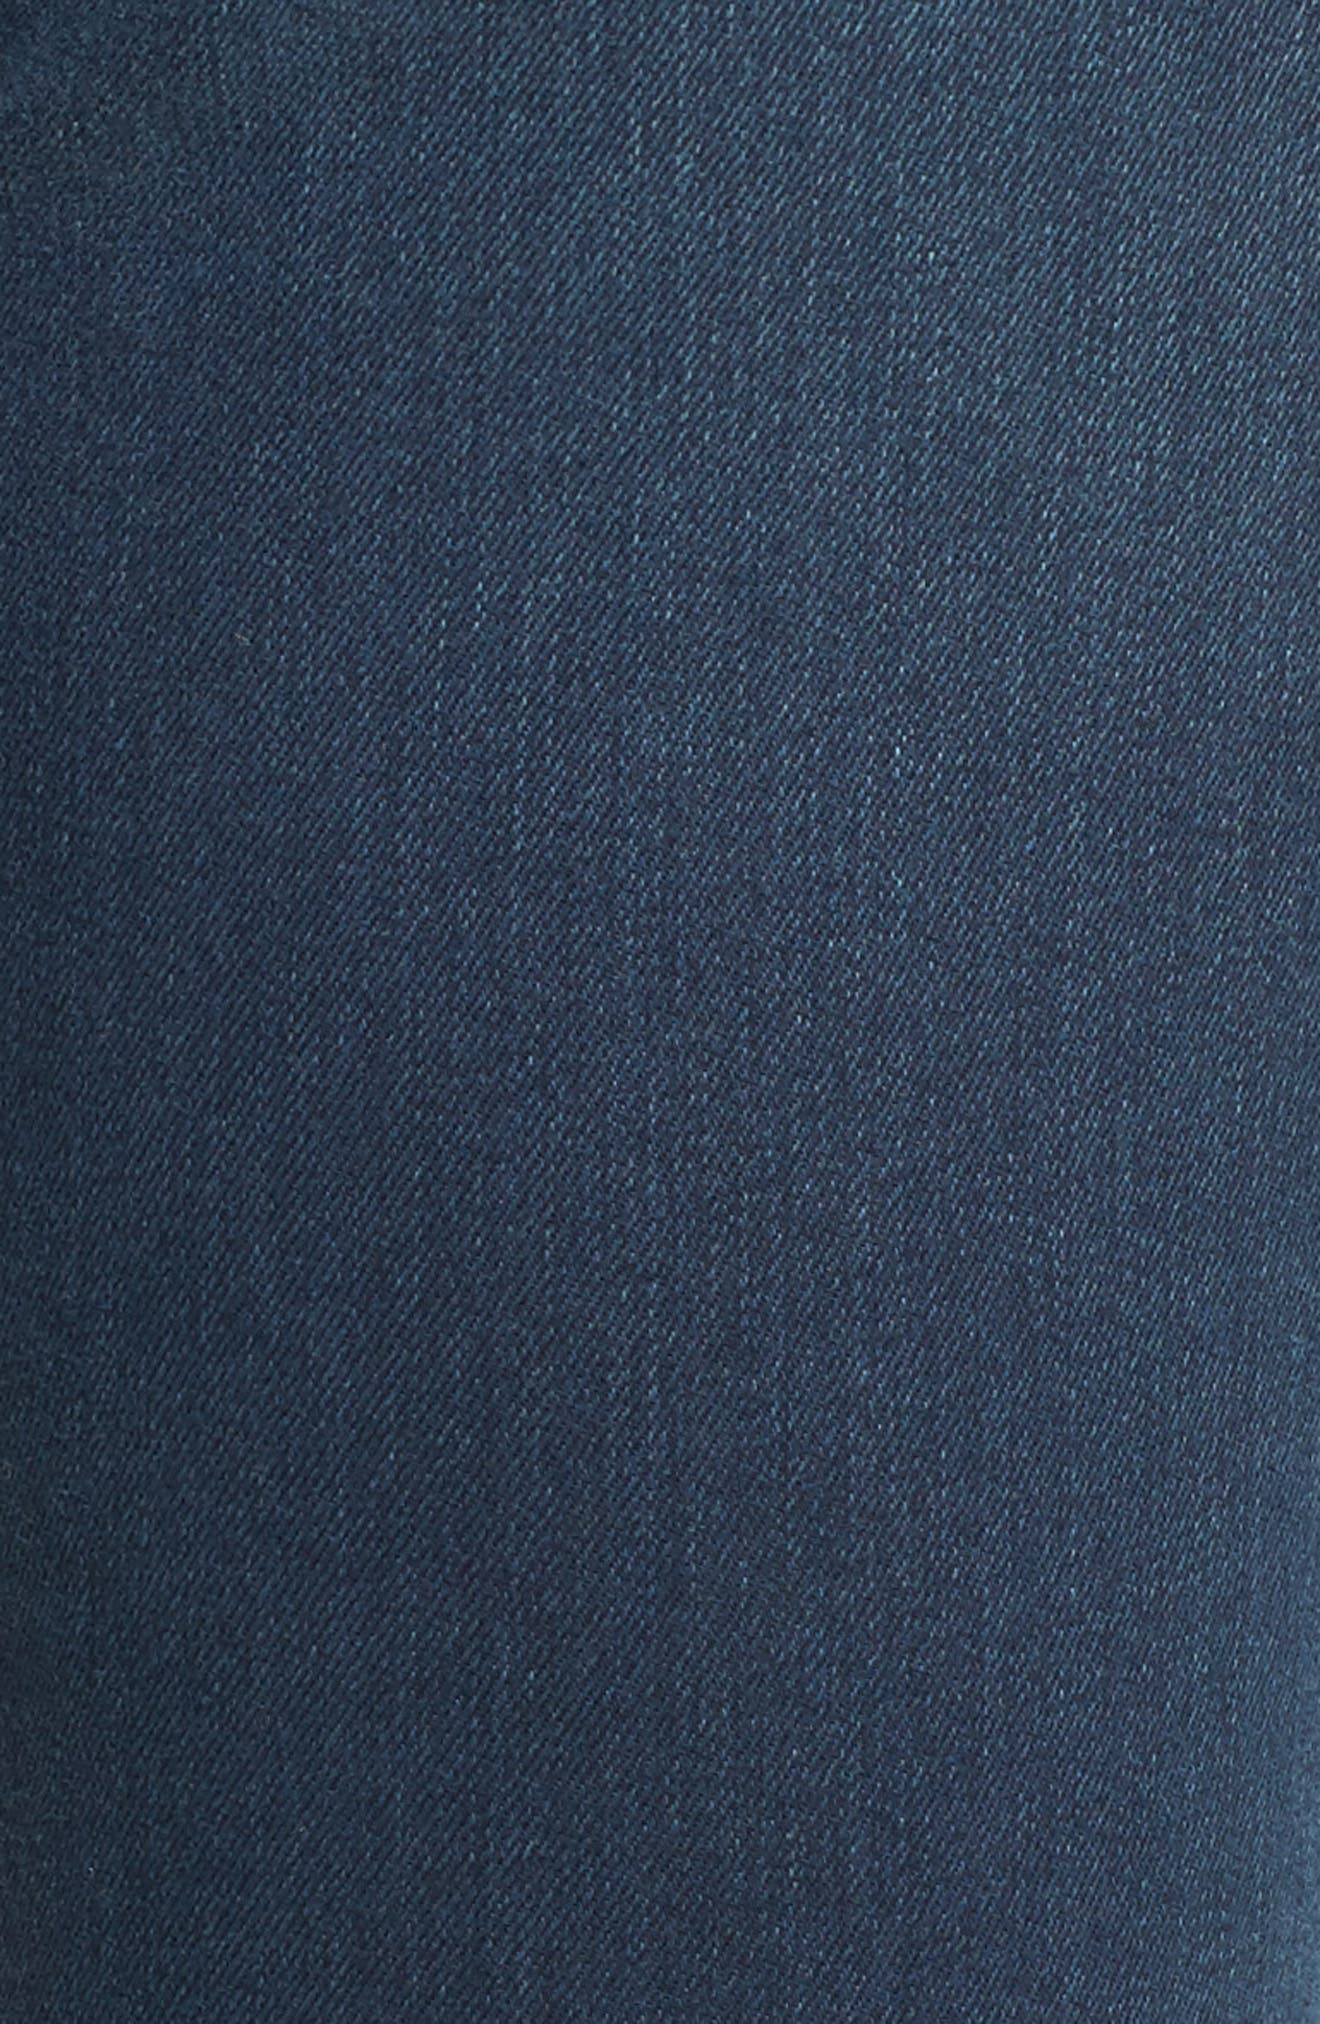 Ami Stretch Super Skinny Jeans,                             Alternate thumbnail 5, color,                             404